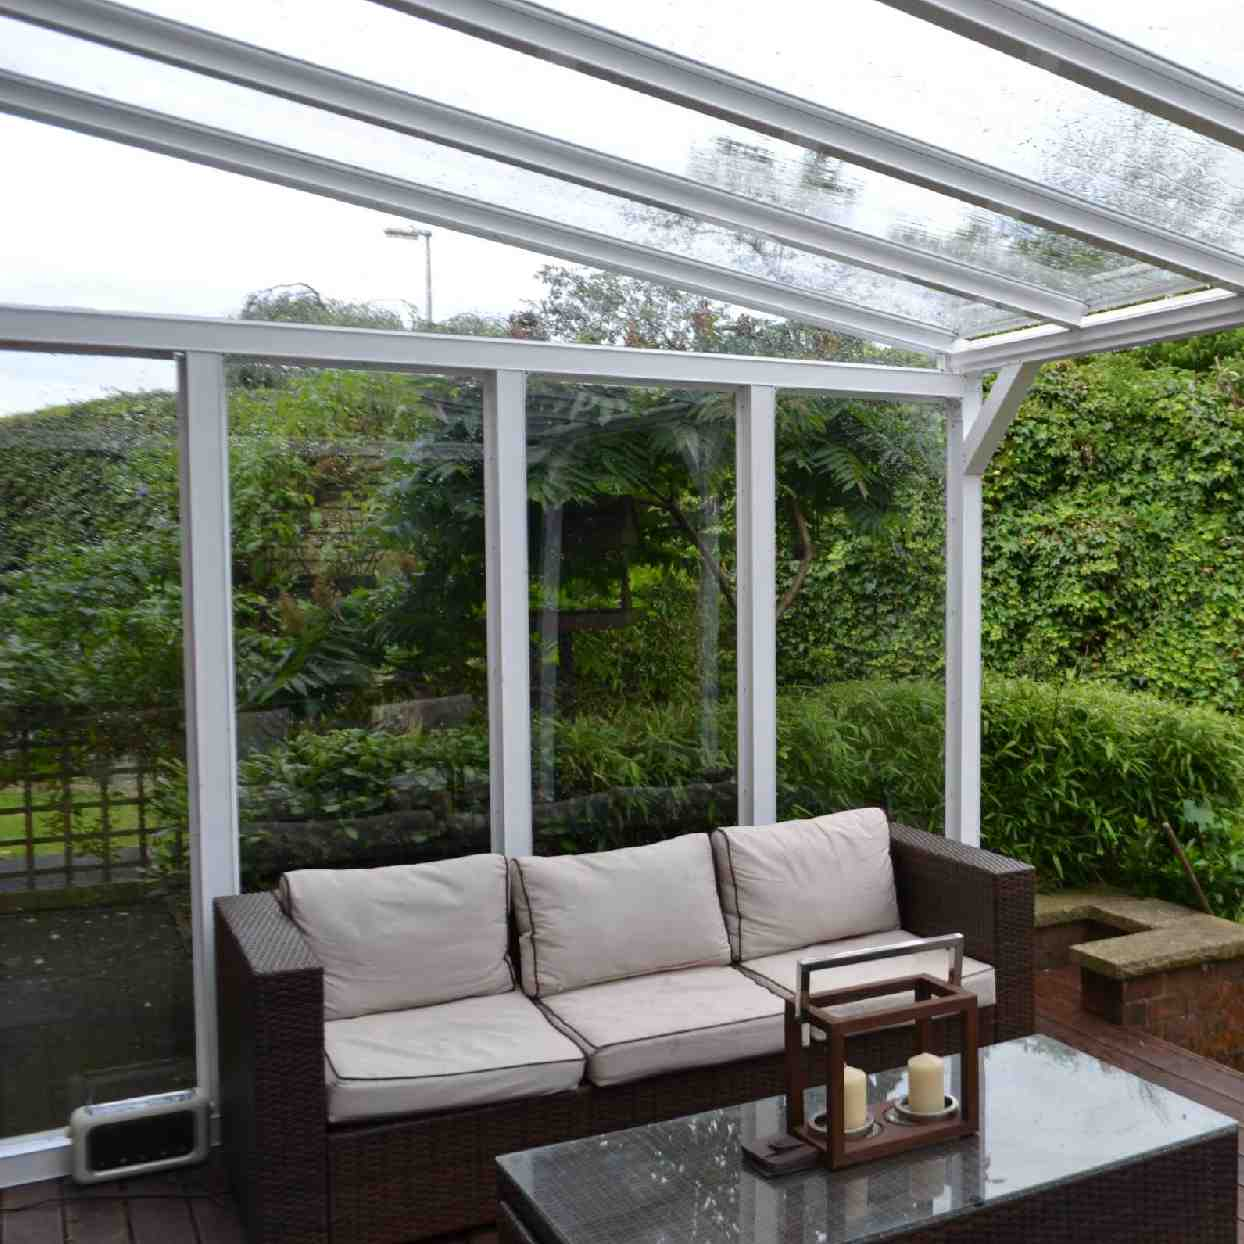 Buy Omega Verandah with 16mm Polycarbonate Glazing - 12.0m (W) x 2.0m (P), (5) Supporting Posts online today